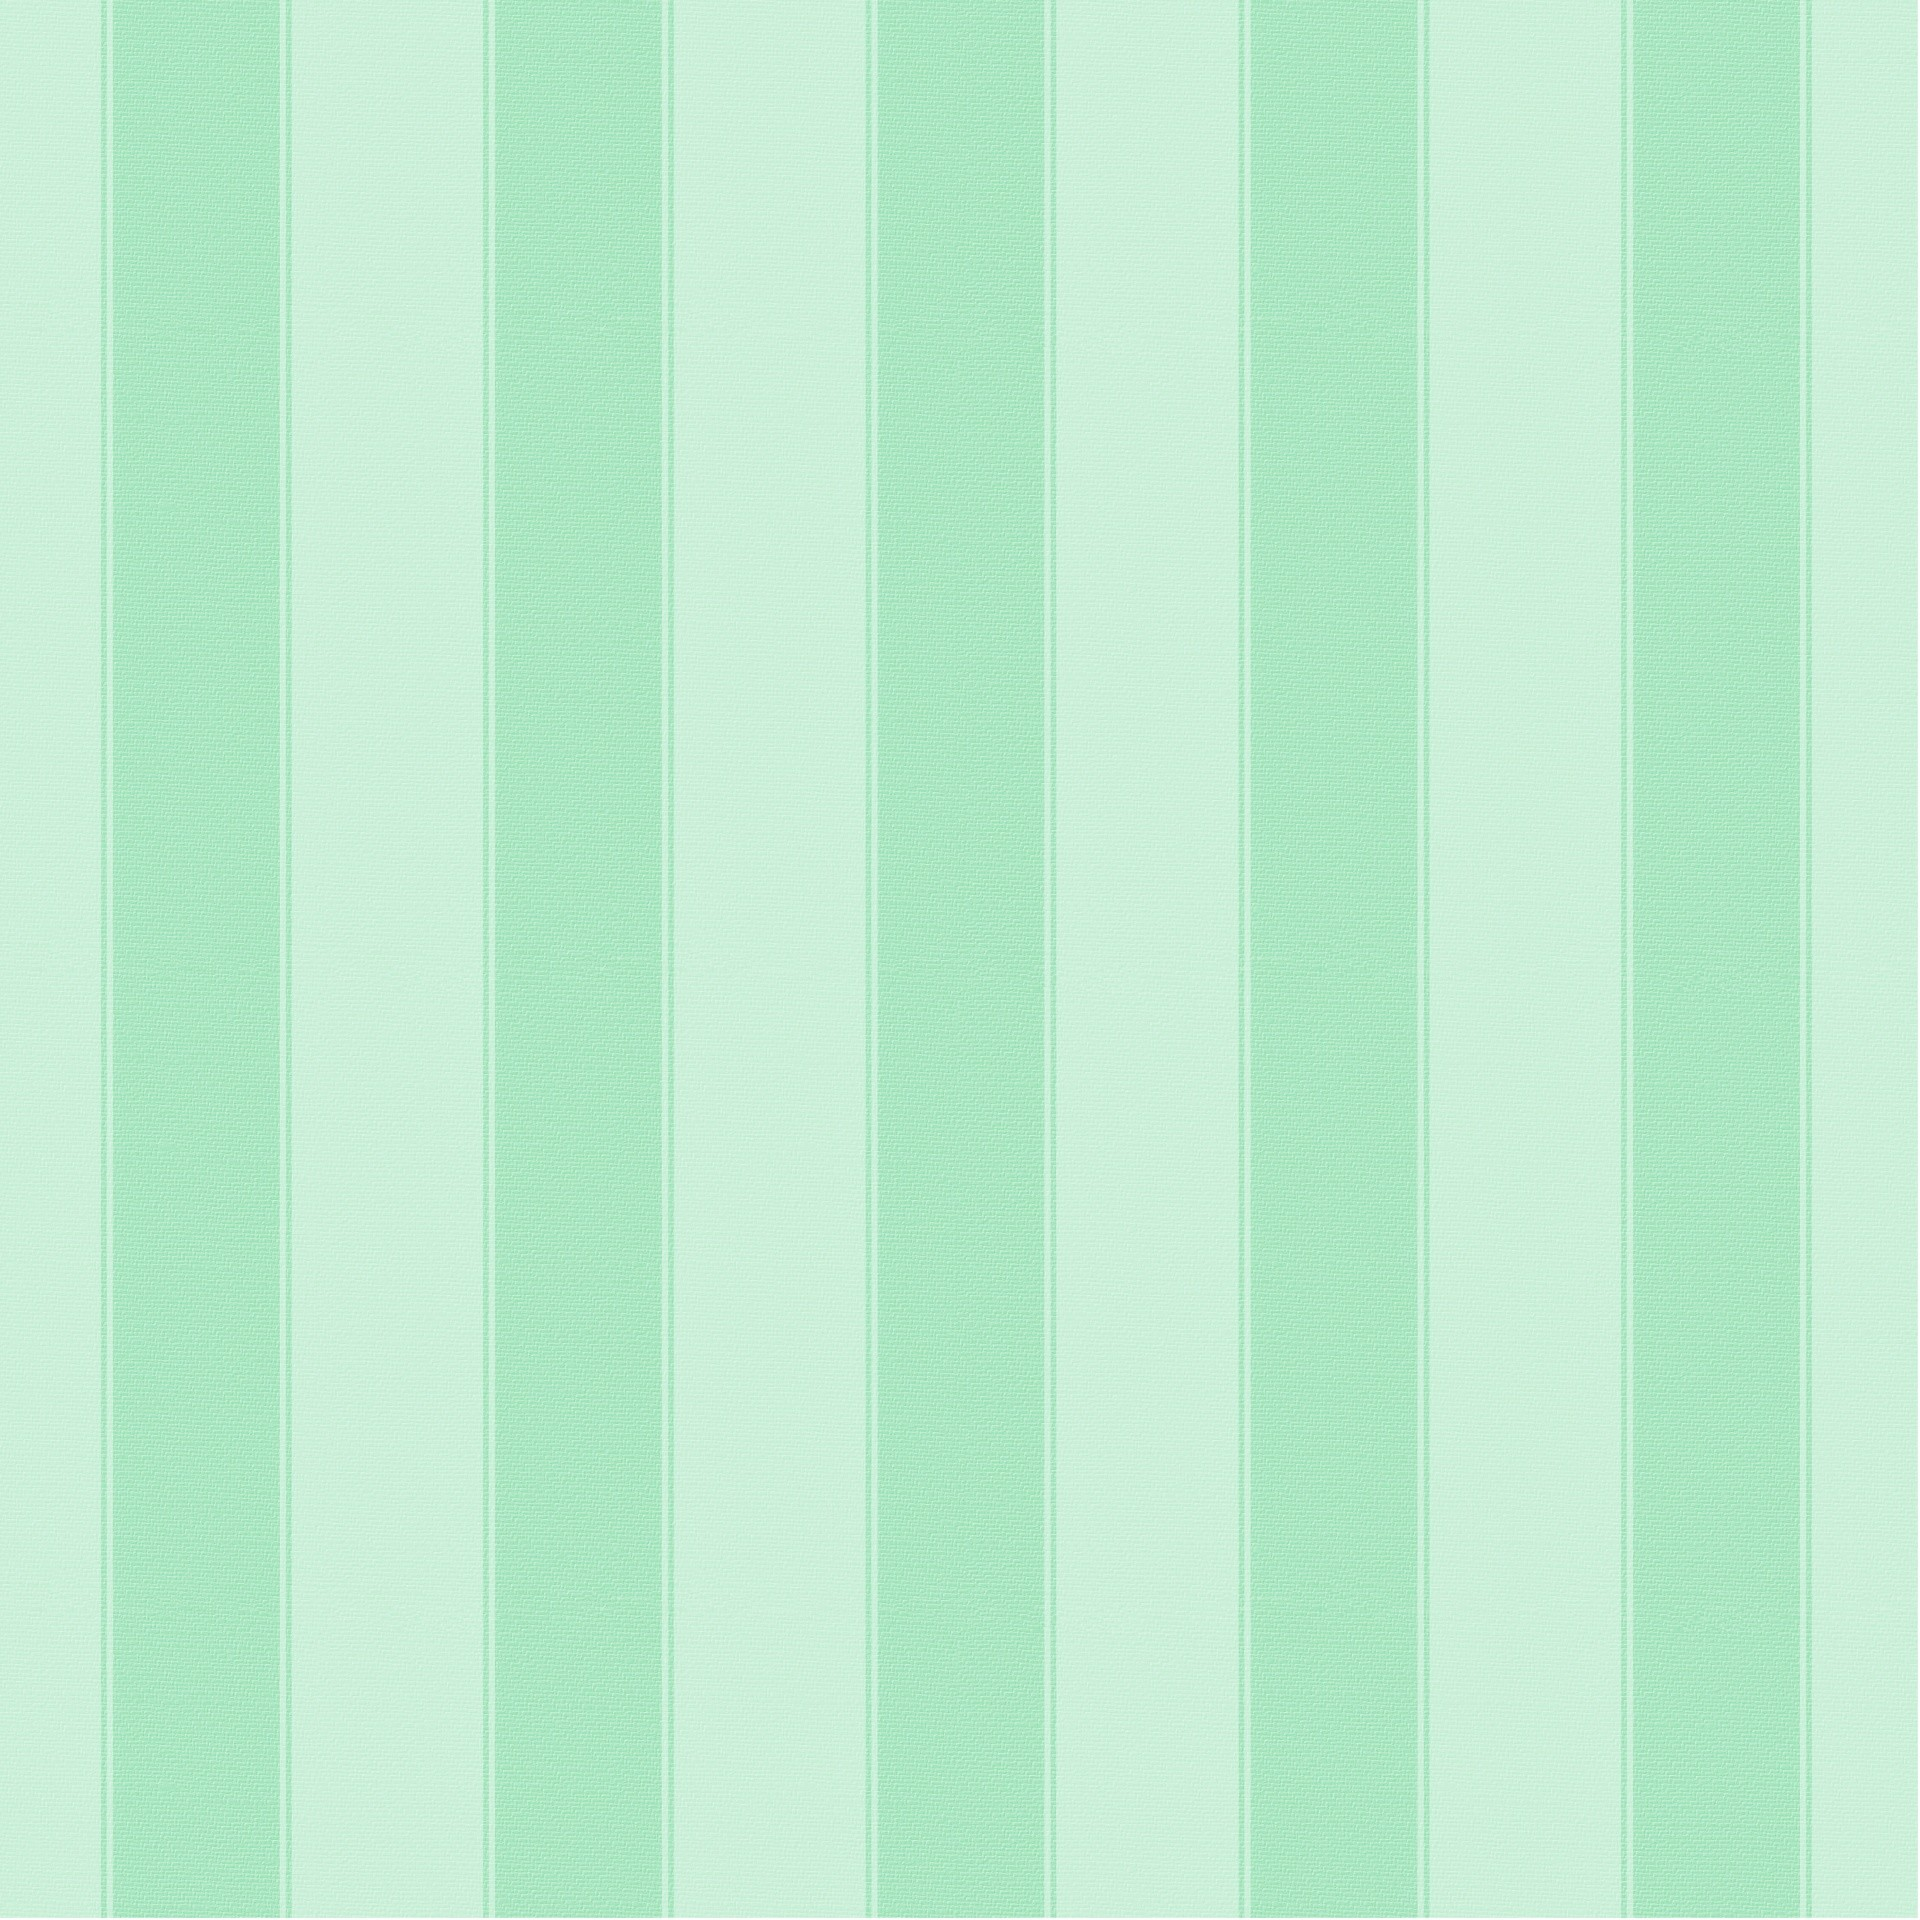 Free Fall Wallpaper With Animals Free Photo Sea Green Stripes Stripes Lines Green